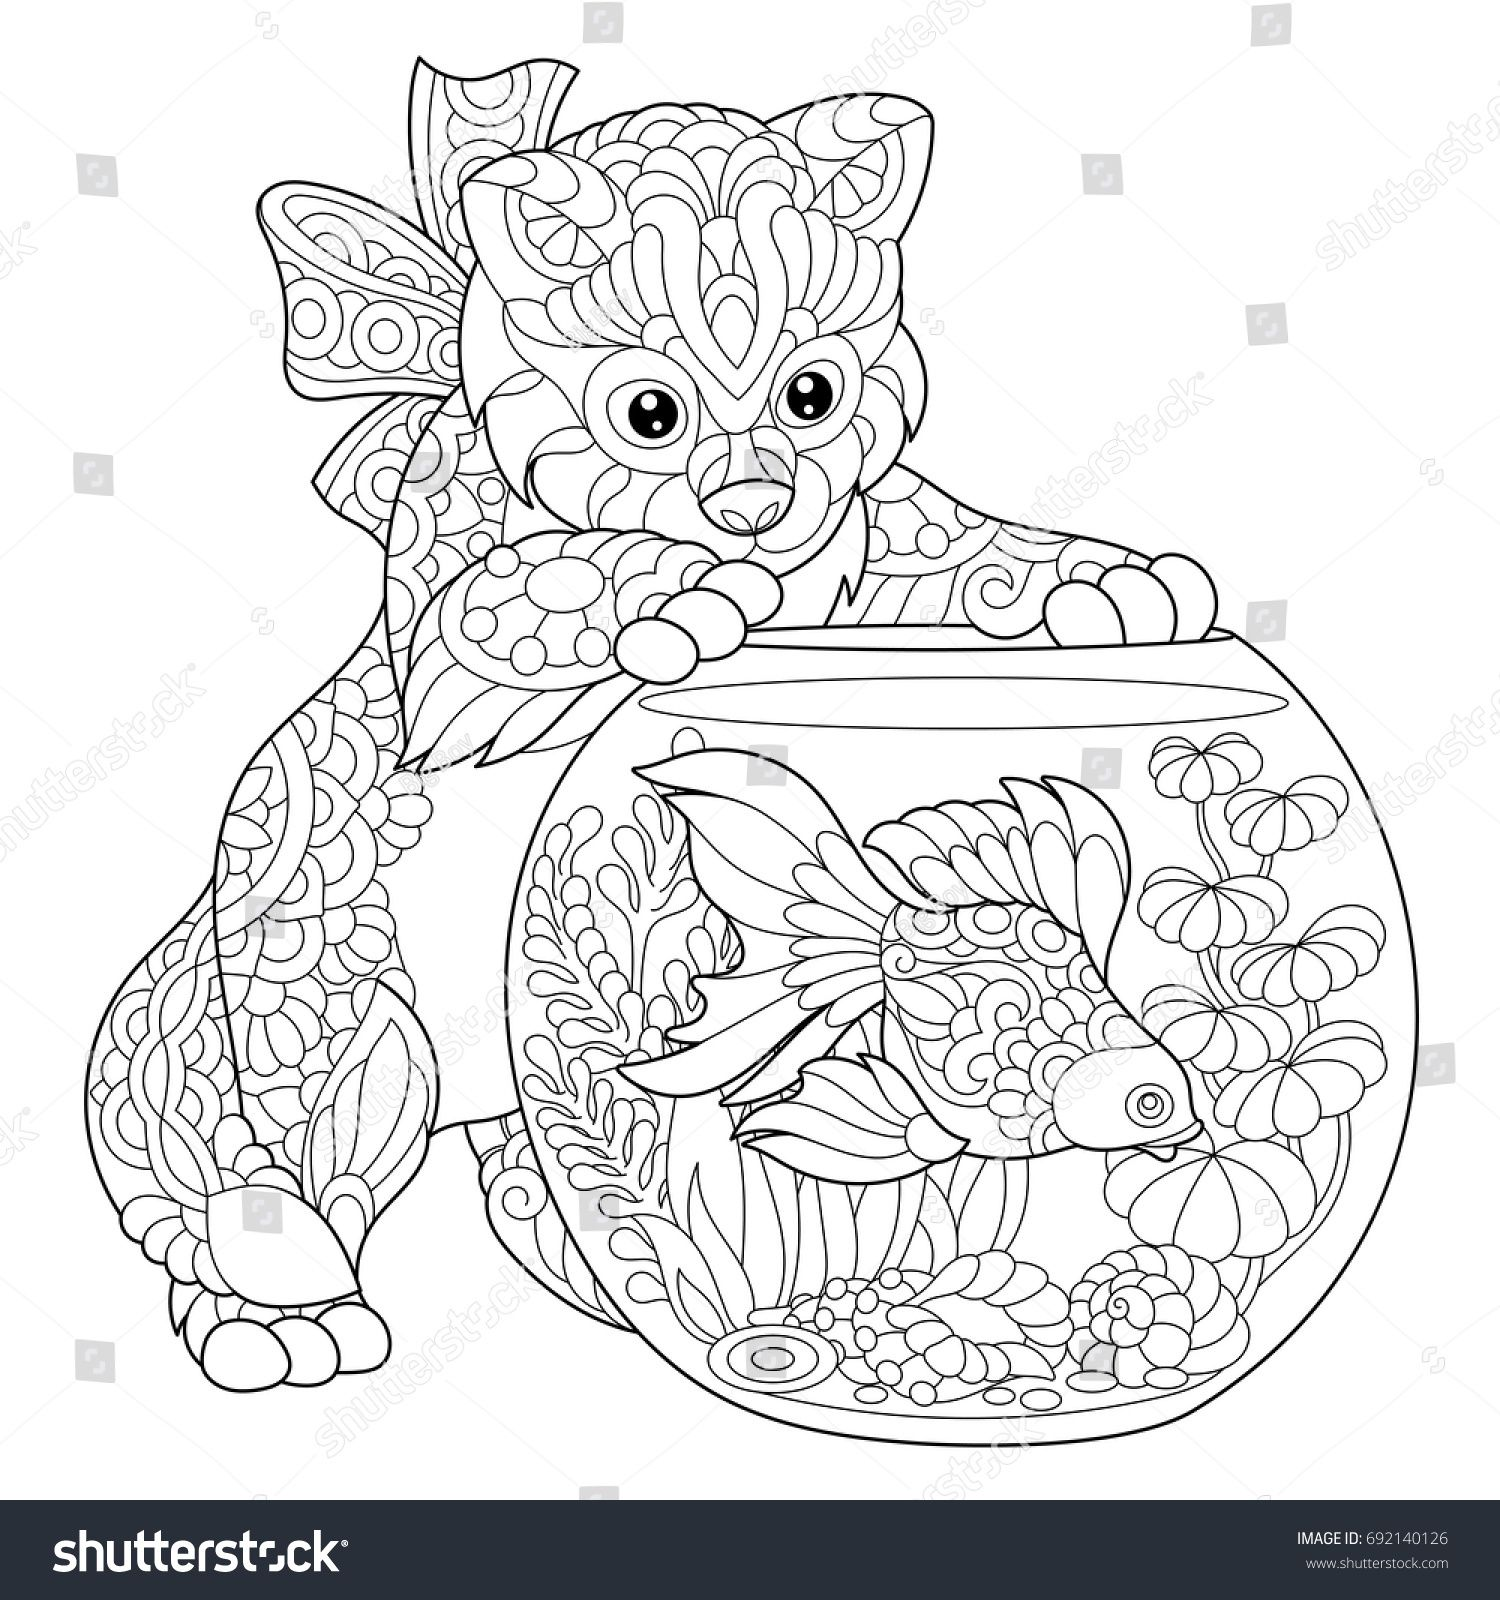 Anti stress colouring doodle and dream - Coloring Page Of Kitten Wondering About Goldfish In Aquarium Freehand Sketch Drawing For Adult Antistress